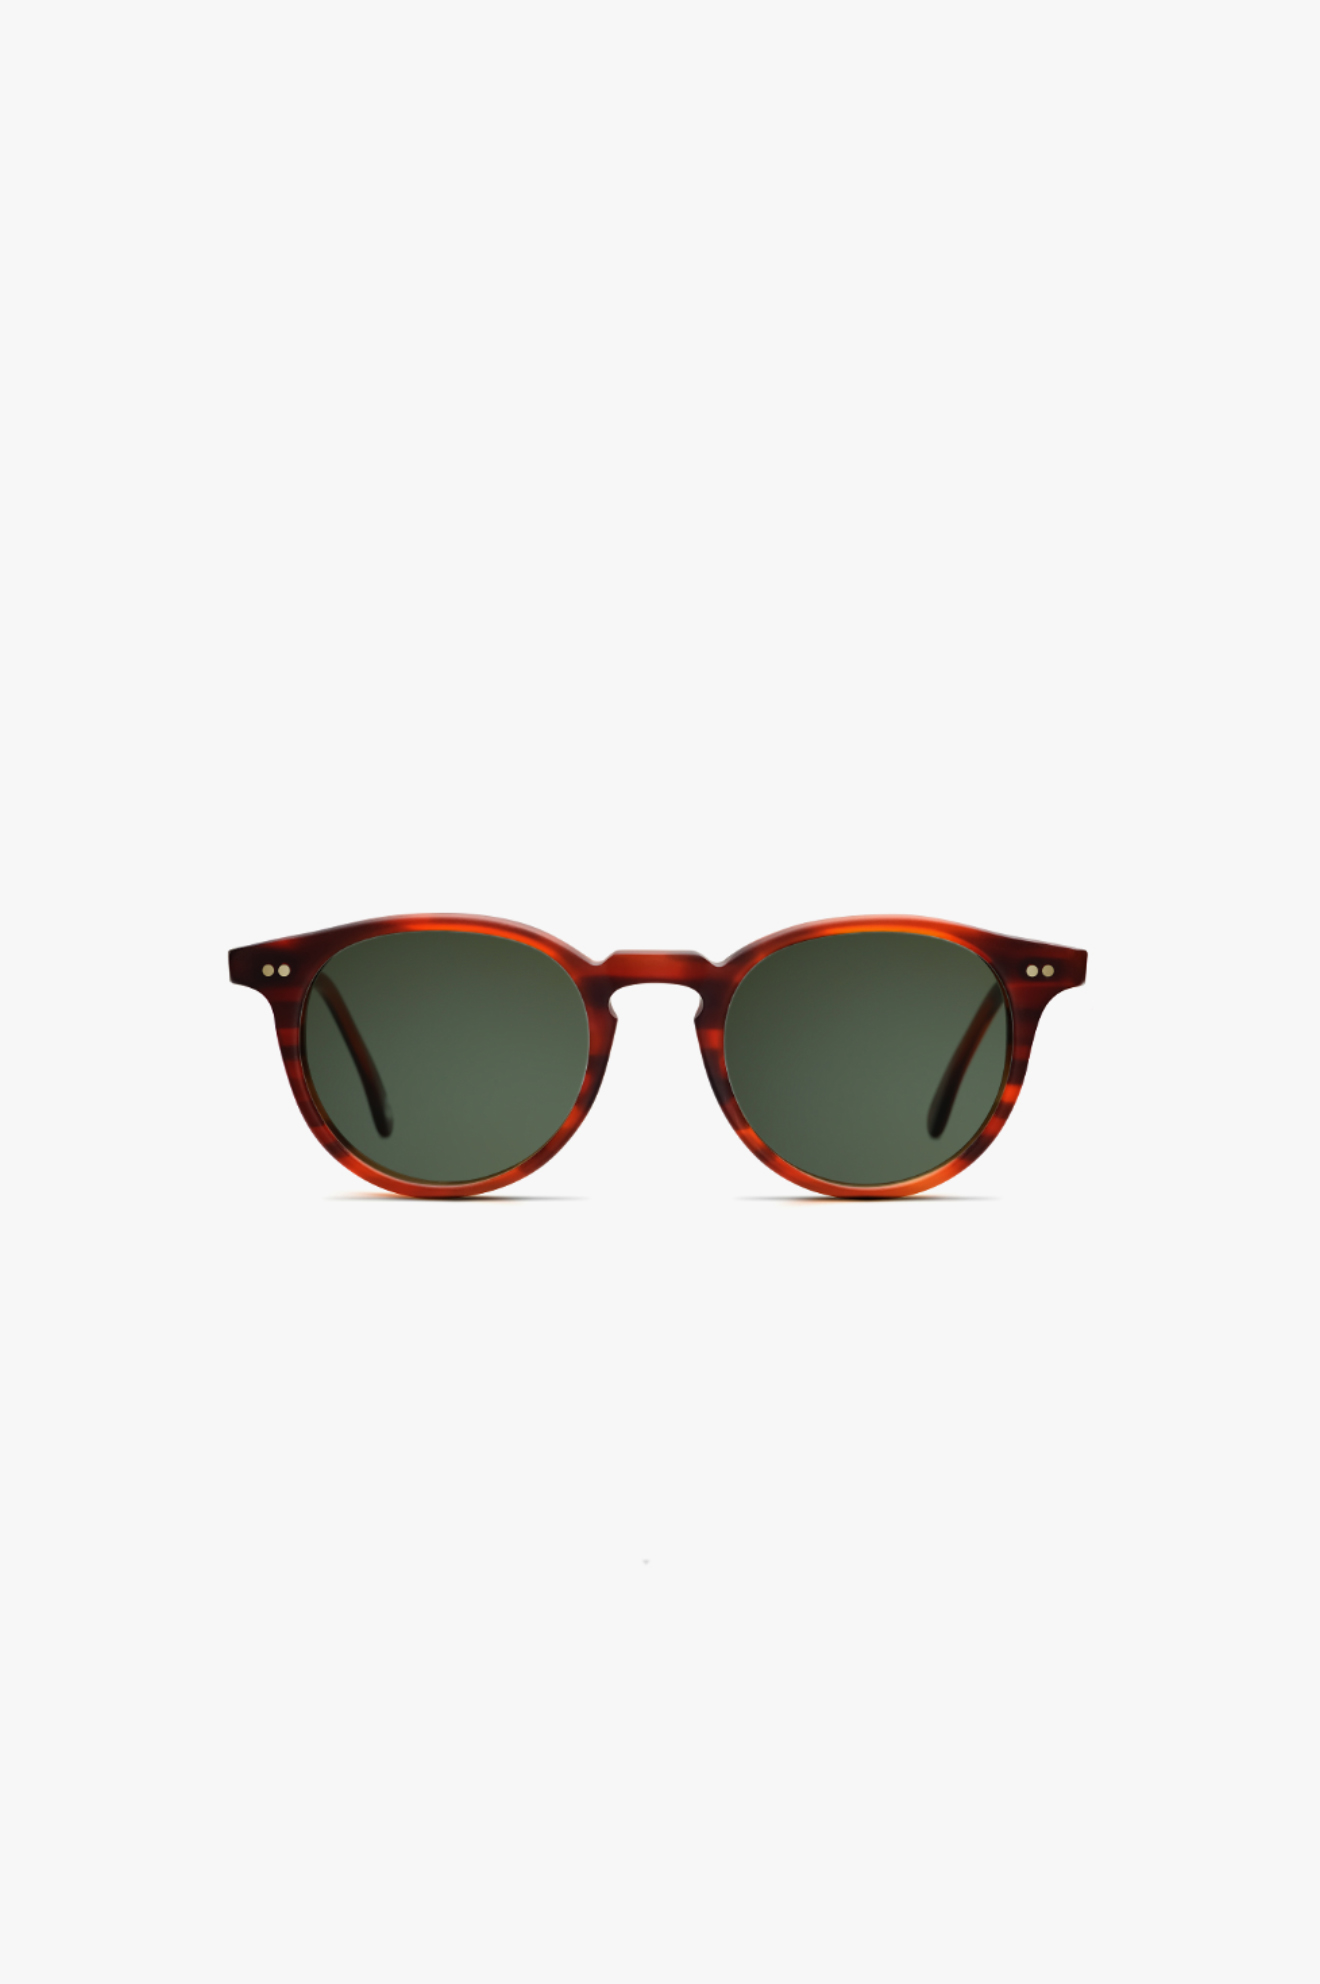 Cool Kid Sunglasses Fiery Tortoise Matte